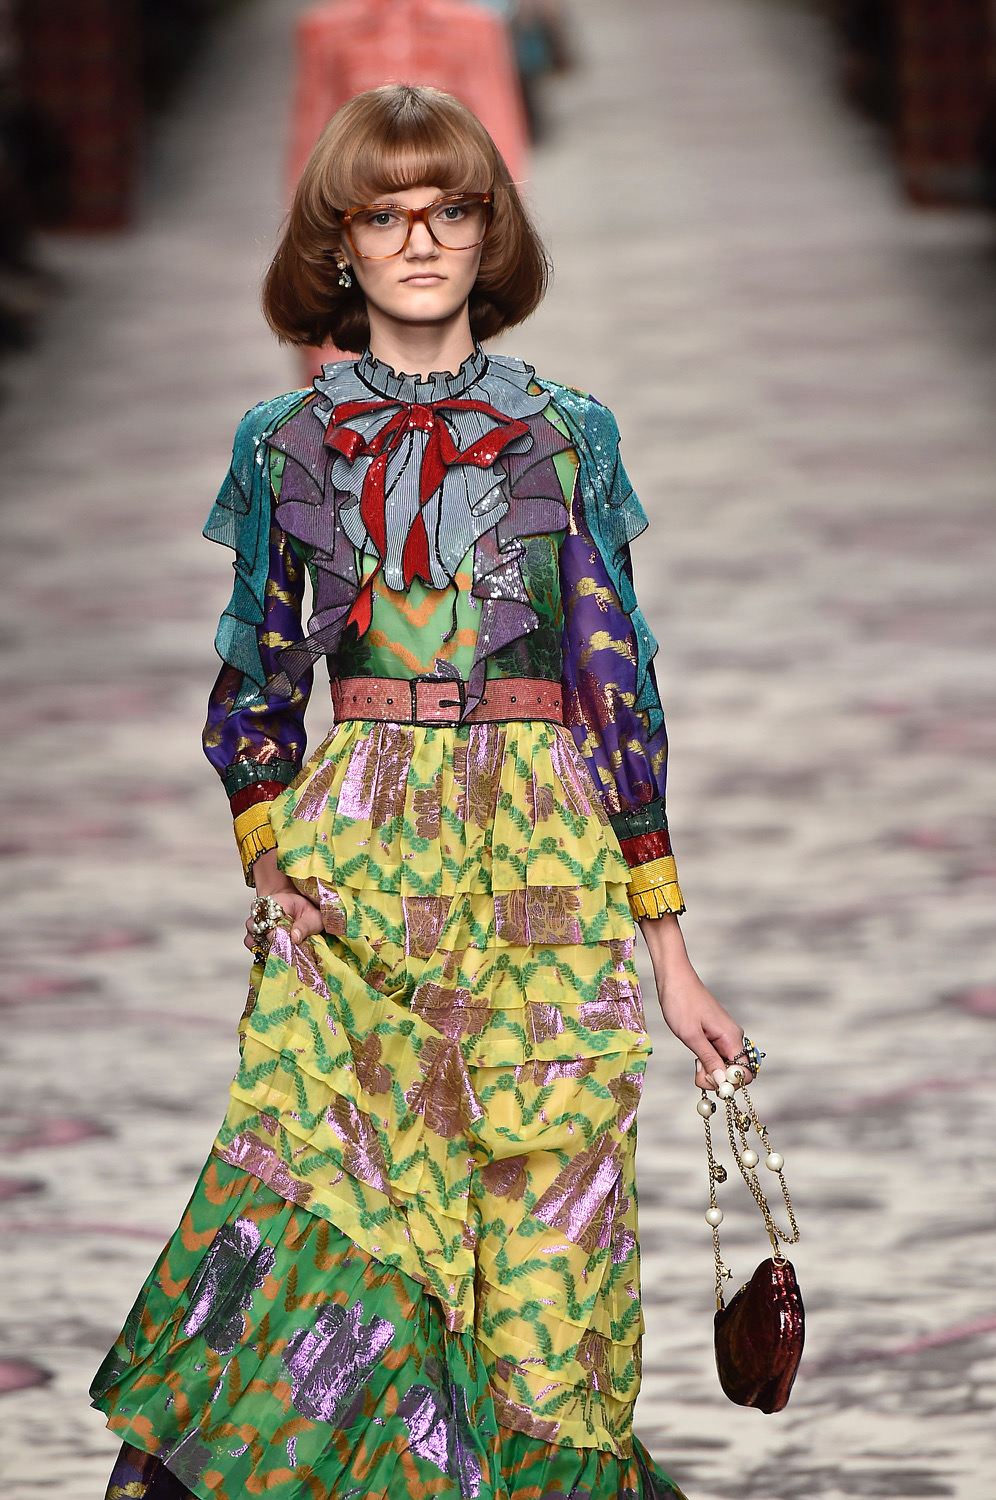 MILAN, ITALY - SEPTEMBER 23:  A model walks the runway at the Gucci Spring Summer 2016 fashion show during Milan Fashion Week on September 23, 2015 in Milan, Italy.  (Photo by Catwalking/Getty Images)